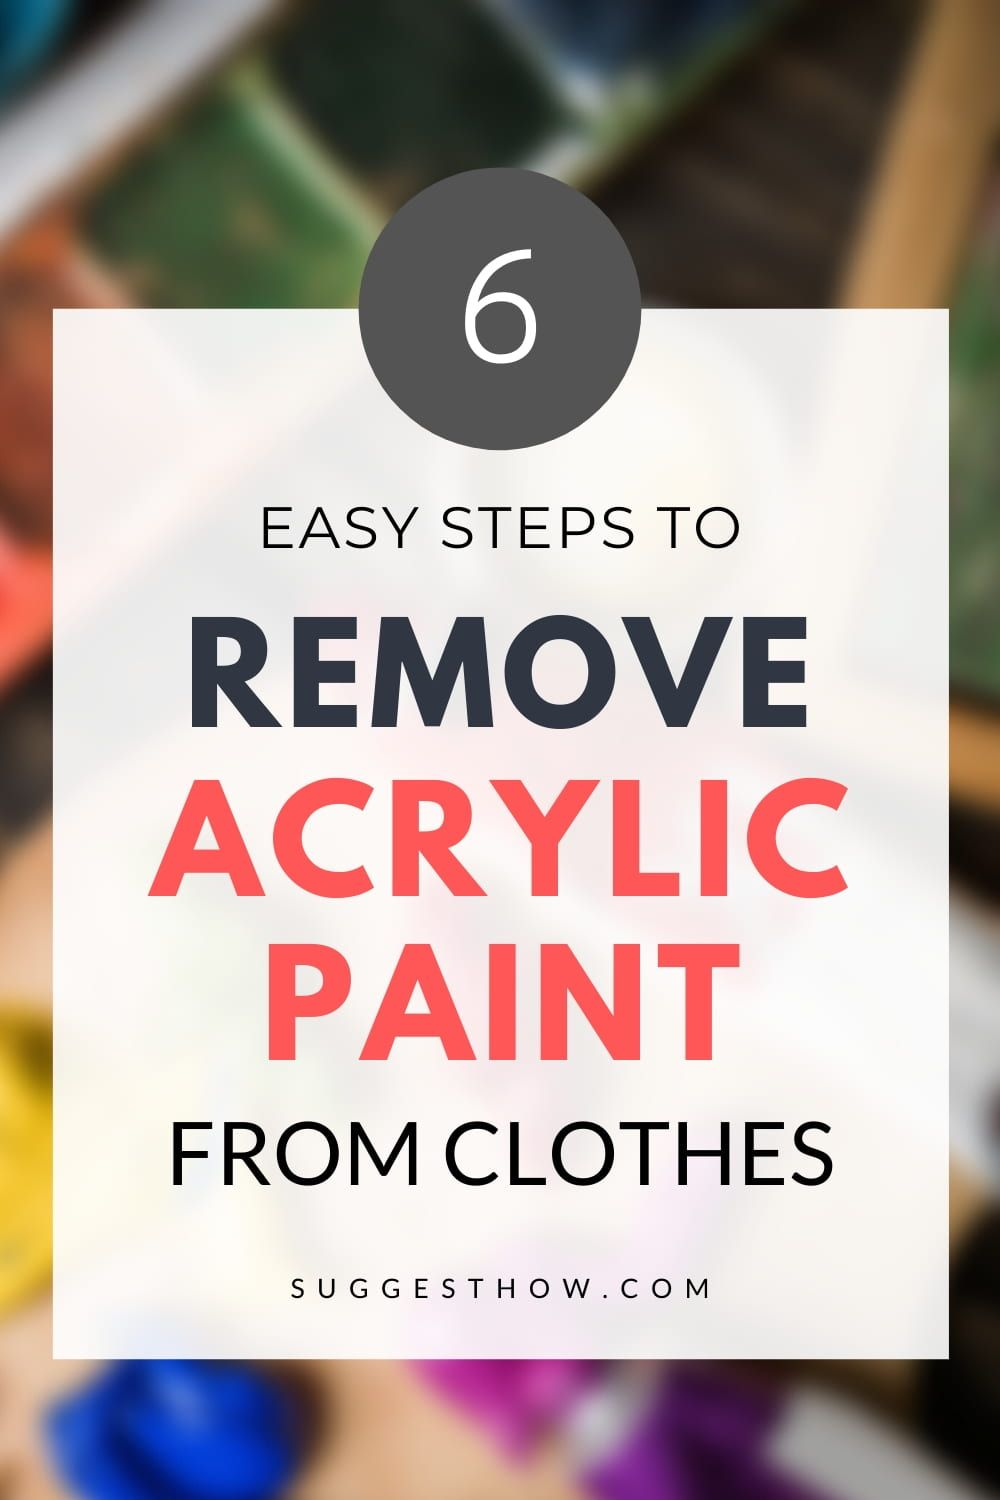 How To Remove Acrylic Paint From Clothes In 2020 Remove Acrylic Paint Remove Acrylics How To Remove